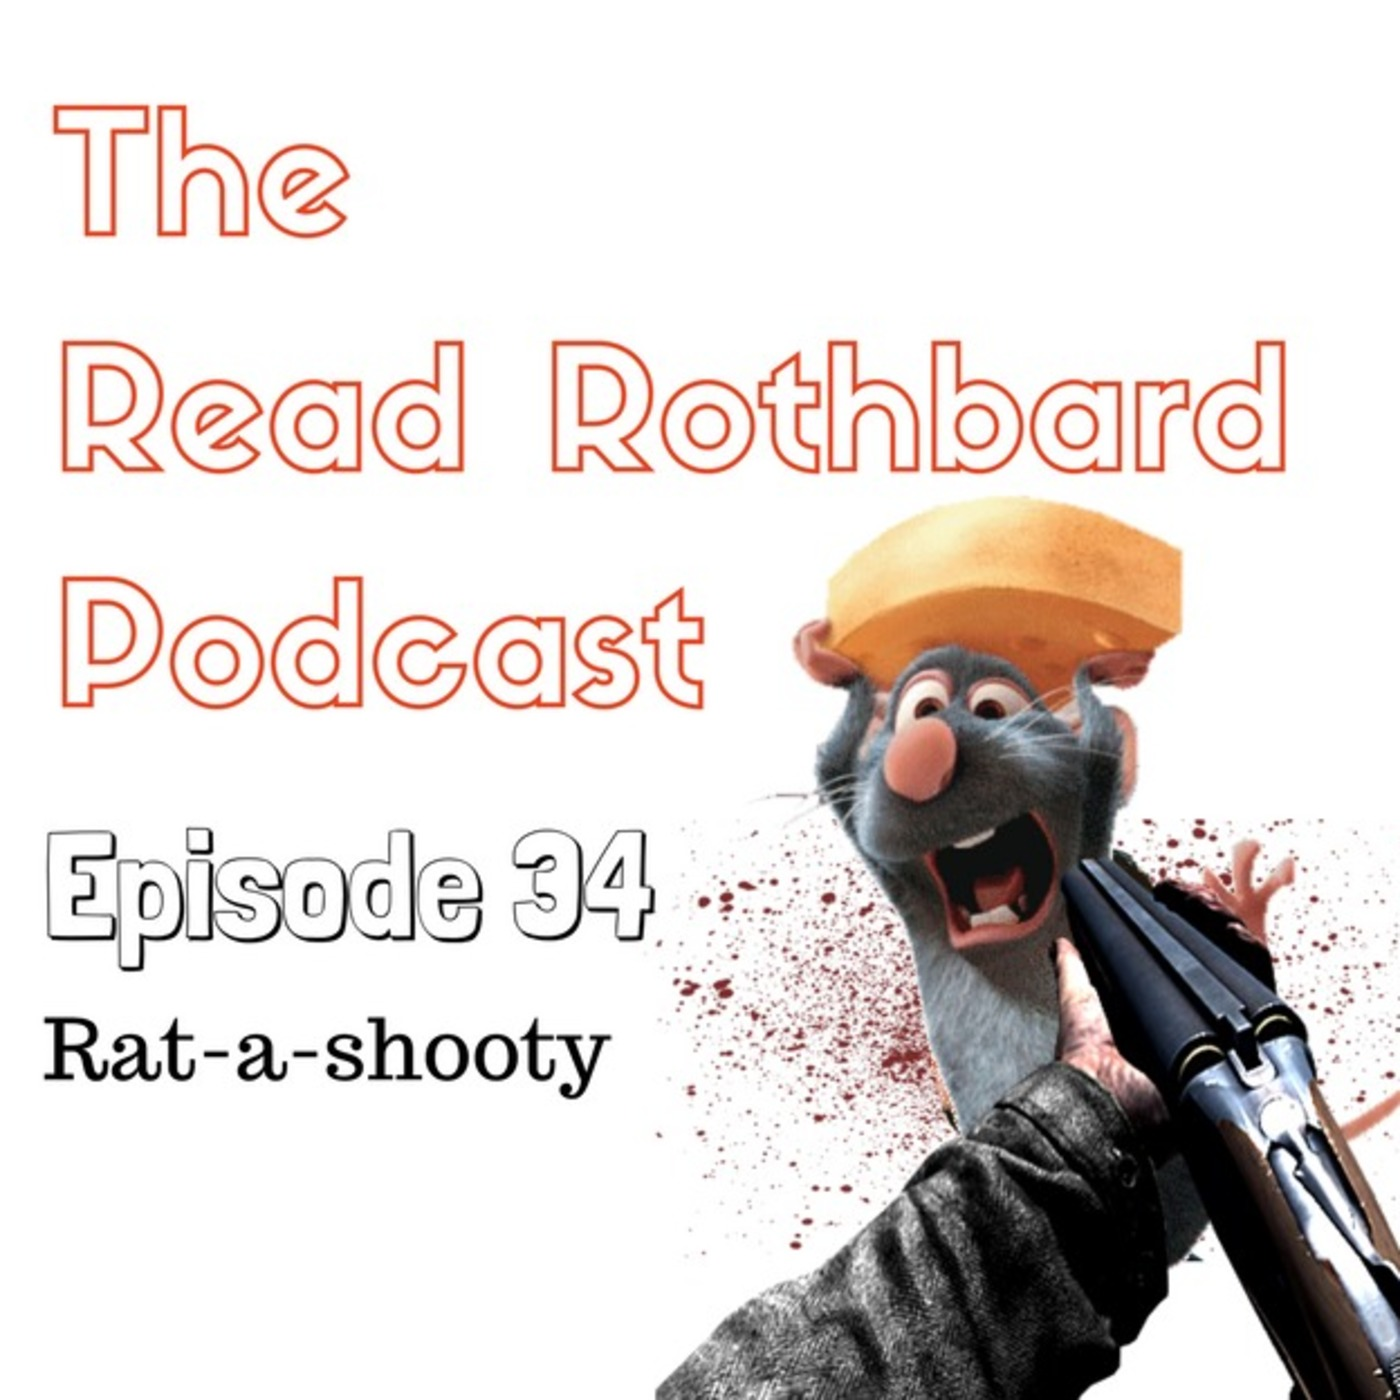 Episode 34 - Rat-a-shooty (1:02:42) - The Read Rothbard Podcast ...